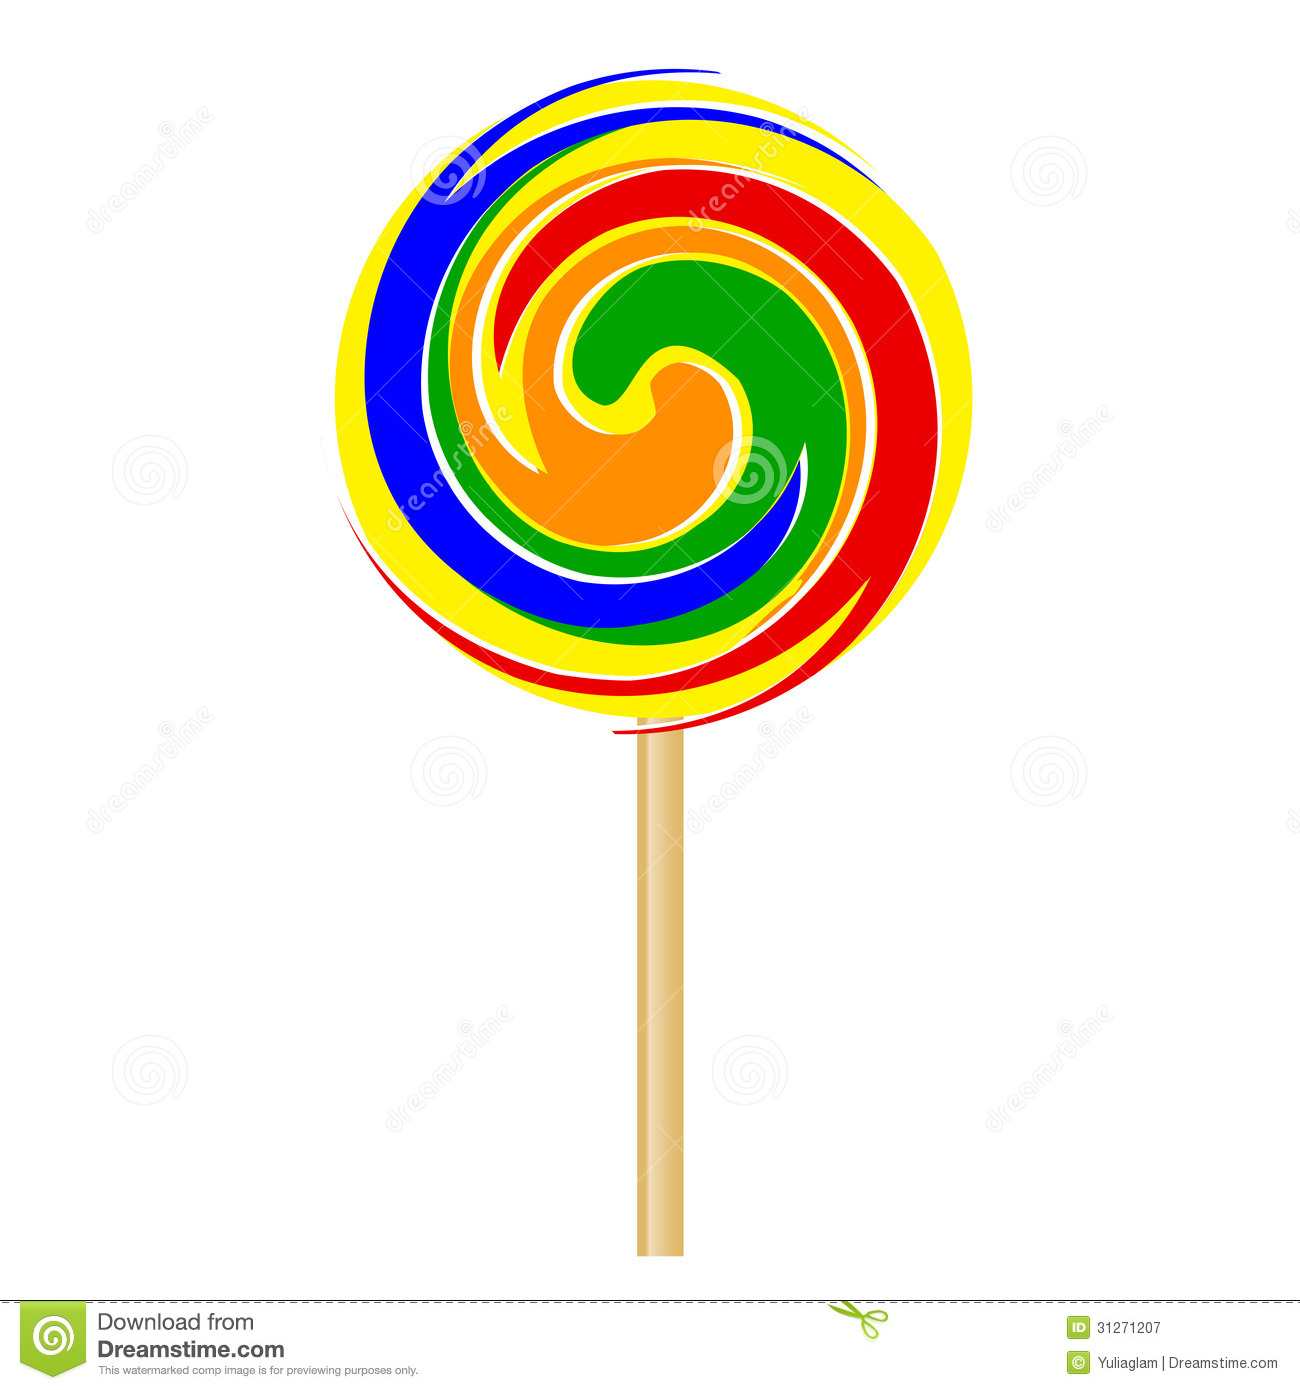 Lollipop clipart round thing. Image free download best